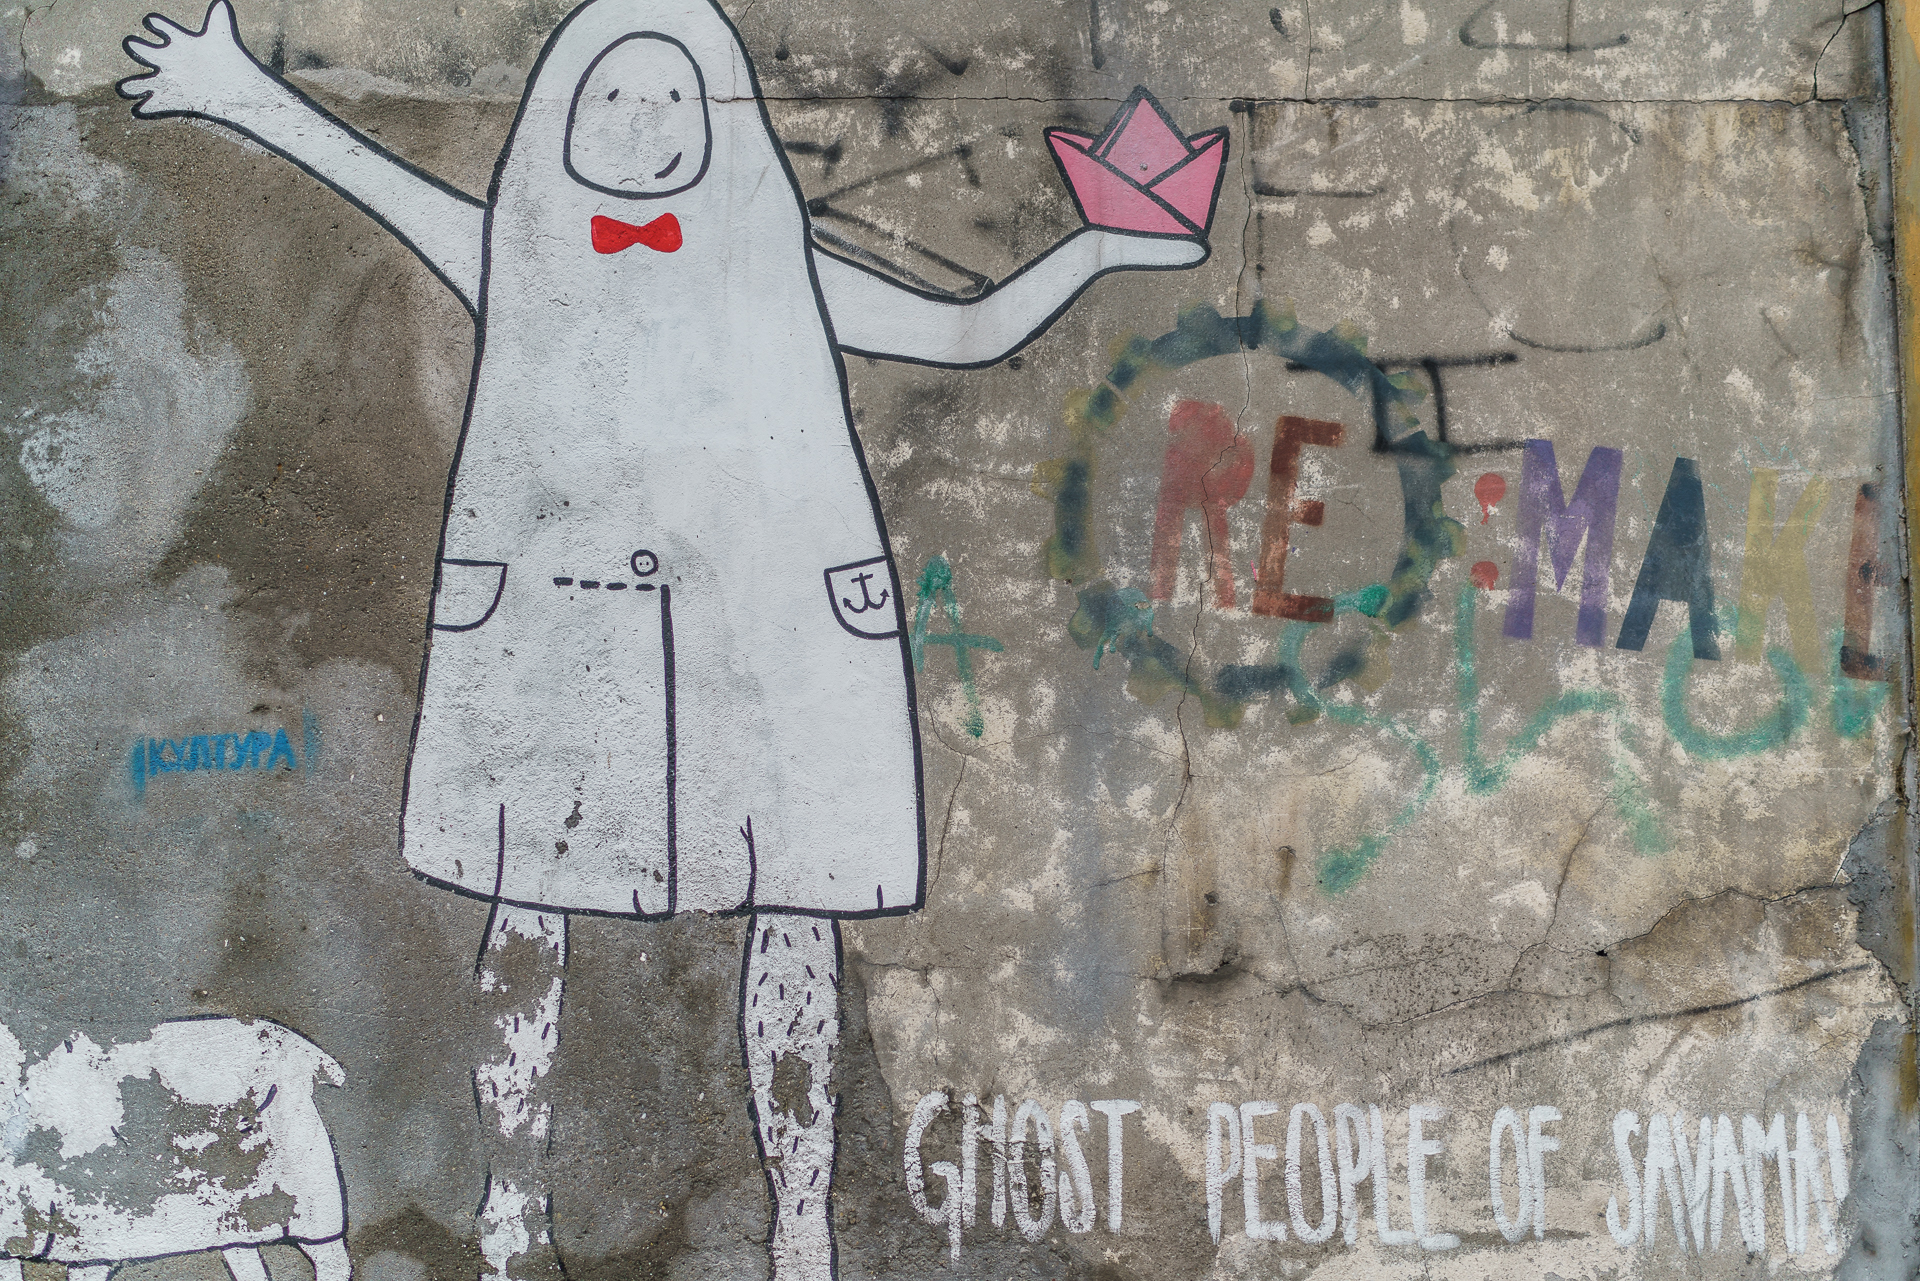 The-Ghost-People-of-Savamala